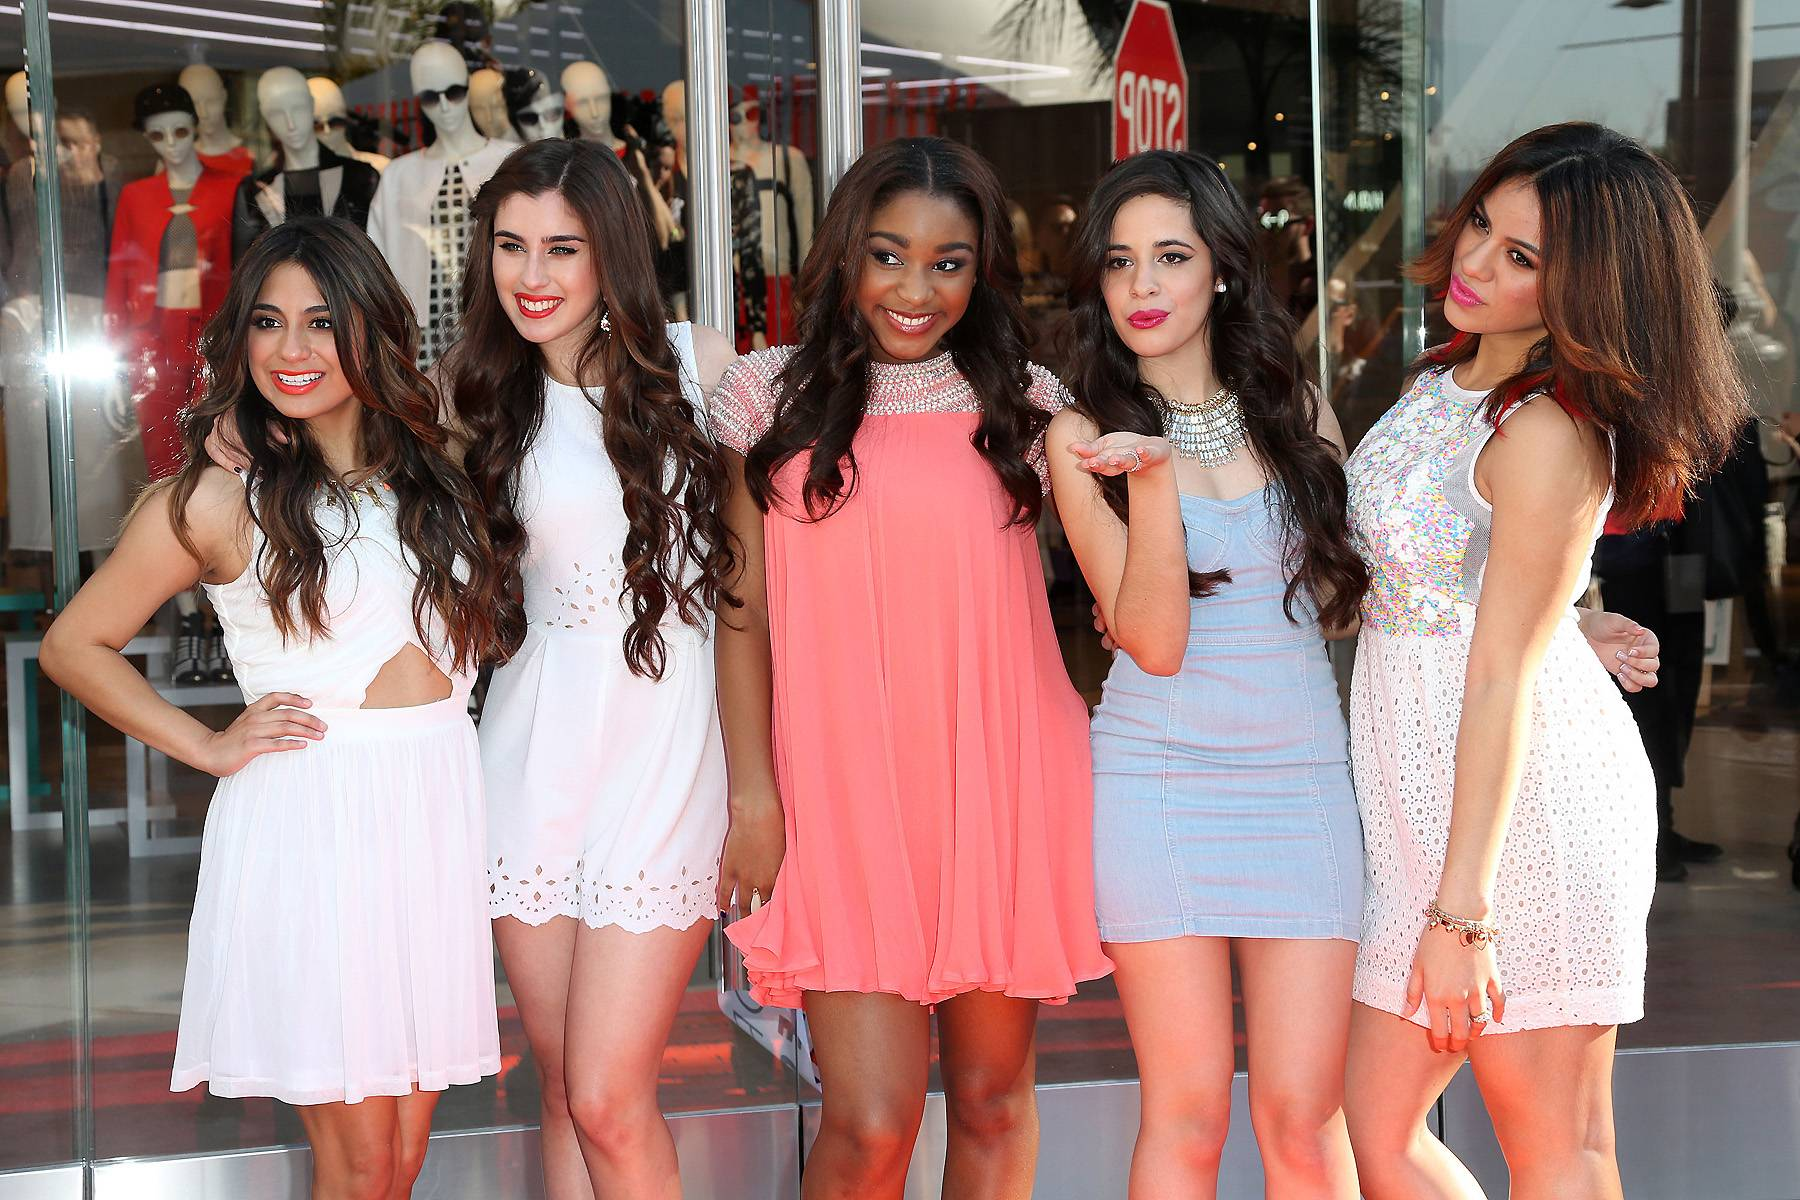 """Fifth Harmony - September 22, 2014 - Mega group Fifth Harmony paid us a visit and performed their latest hit, """"Bo$."""" Watch a clip now!  (Photo: Frederick M. Brown/Getty Images)"""